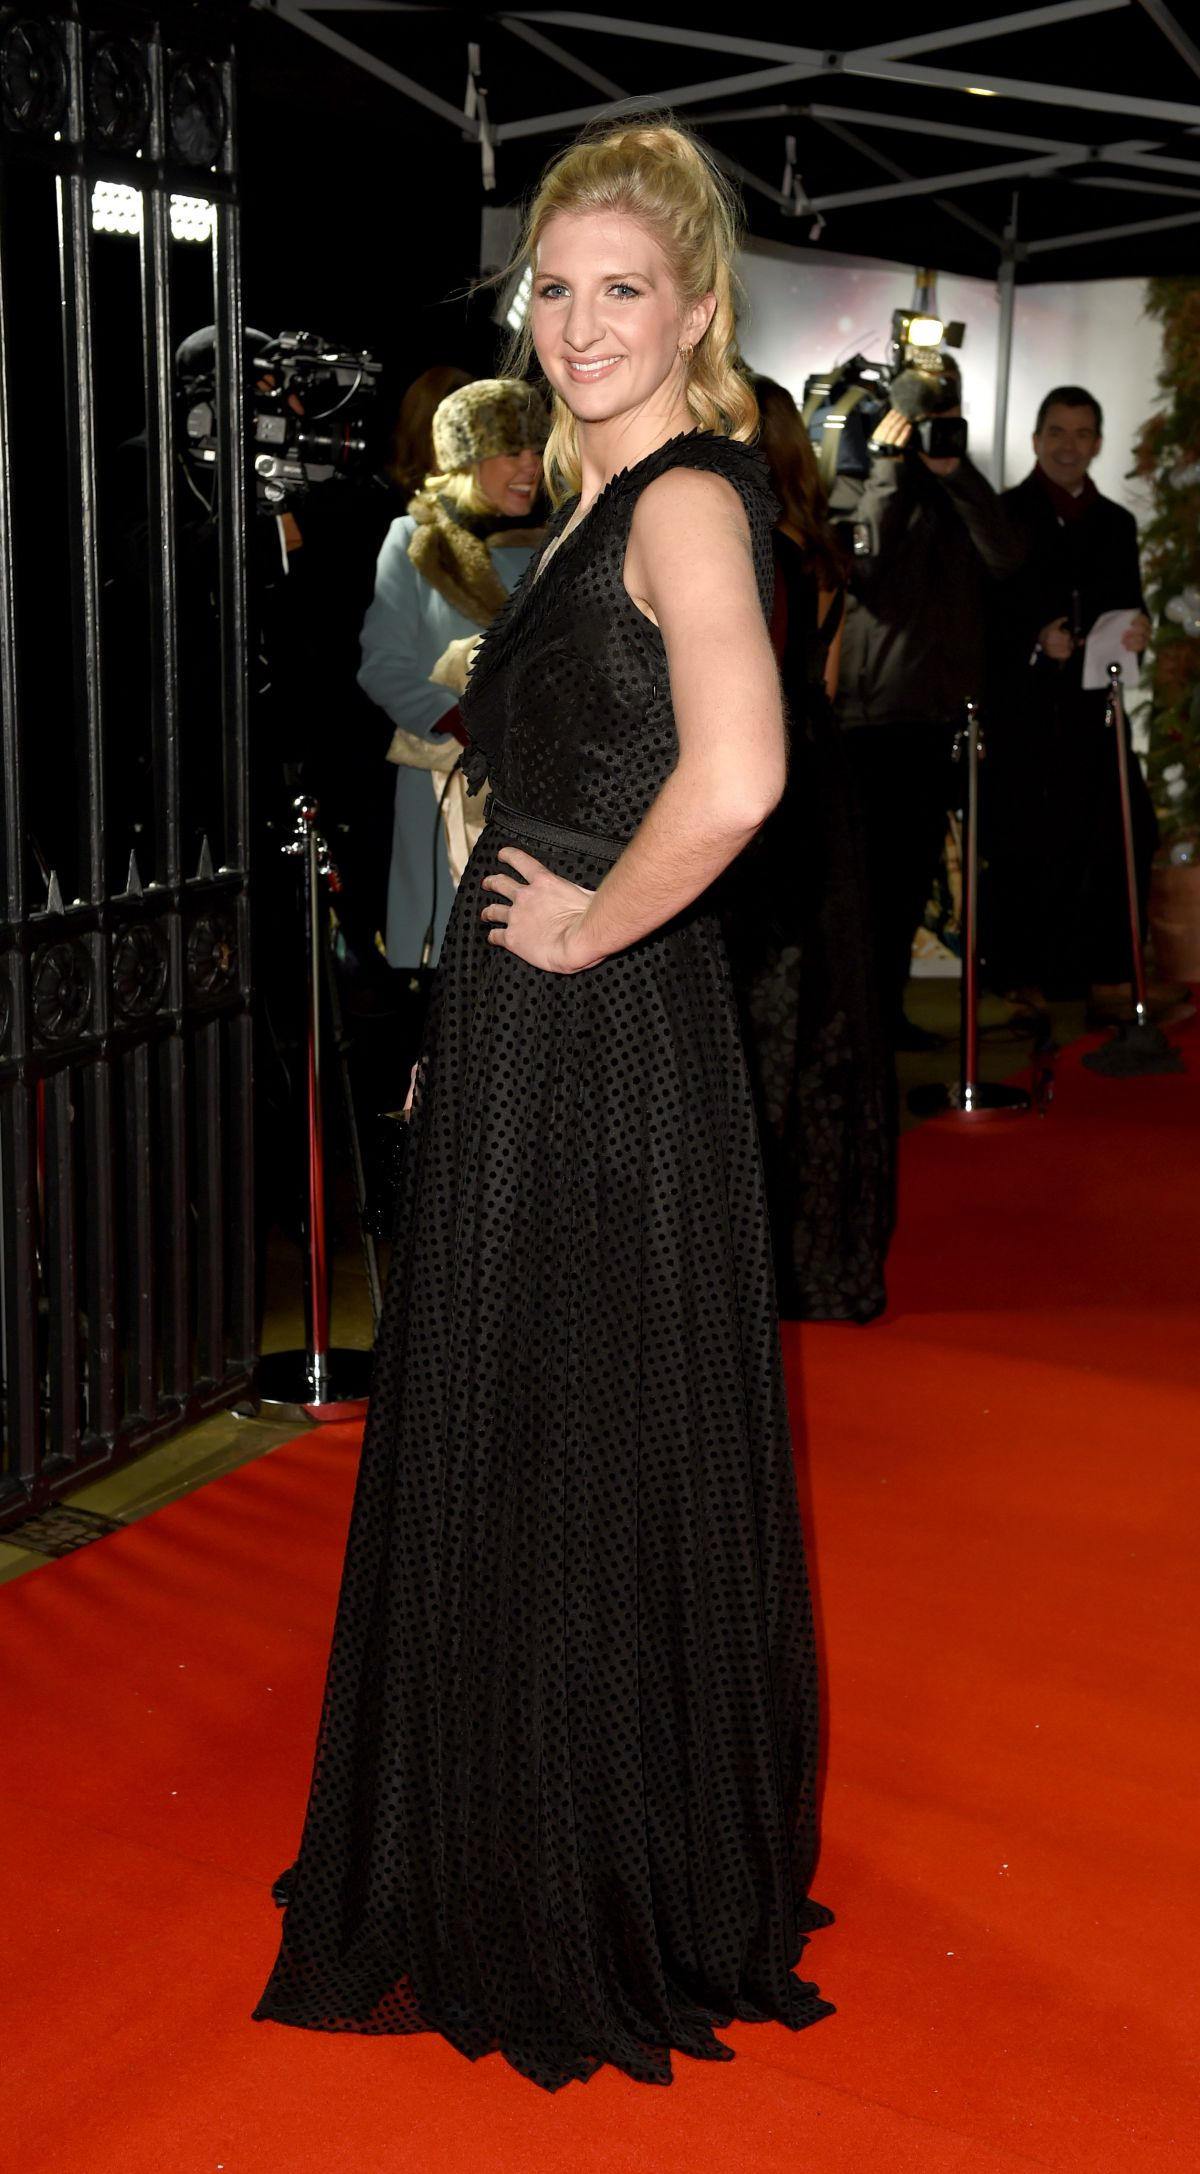 rebecca adlington - photo #37